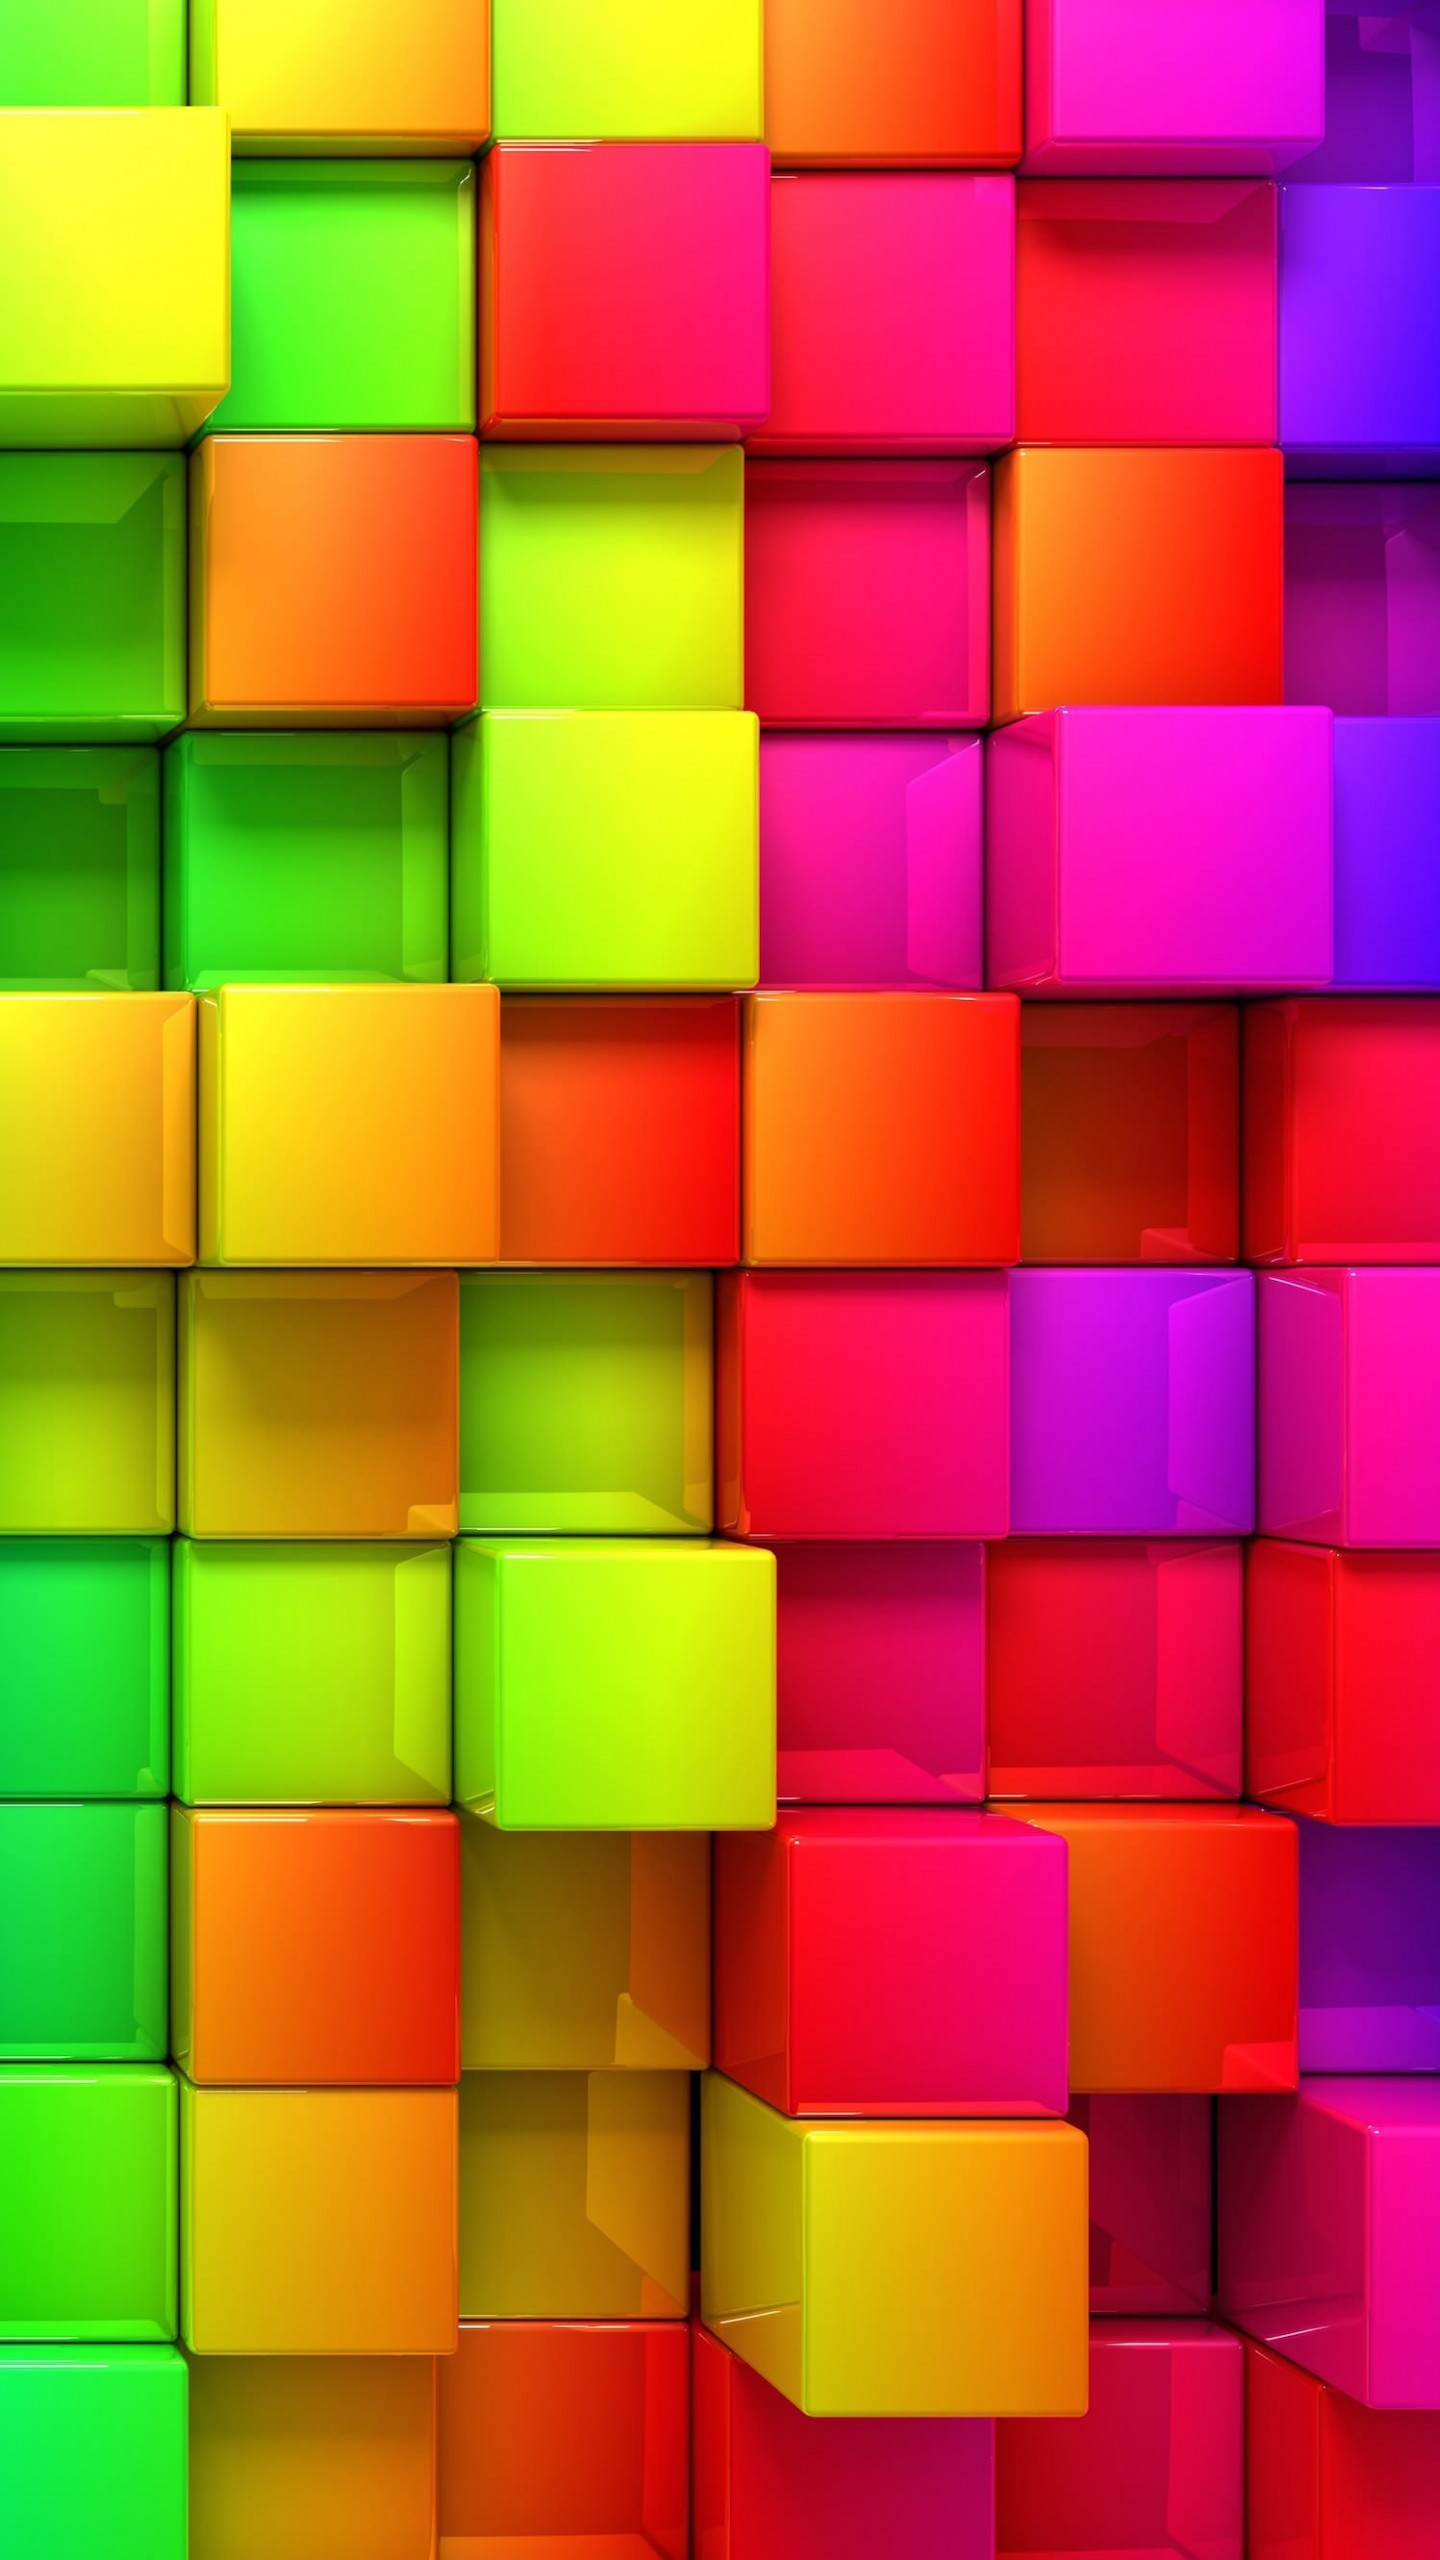 ... Cubic Rainbow HD wallpaper for Galaxy Note 4 - HDwallpapers.net